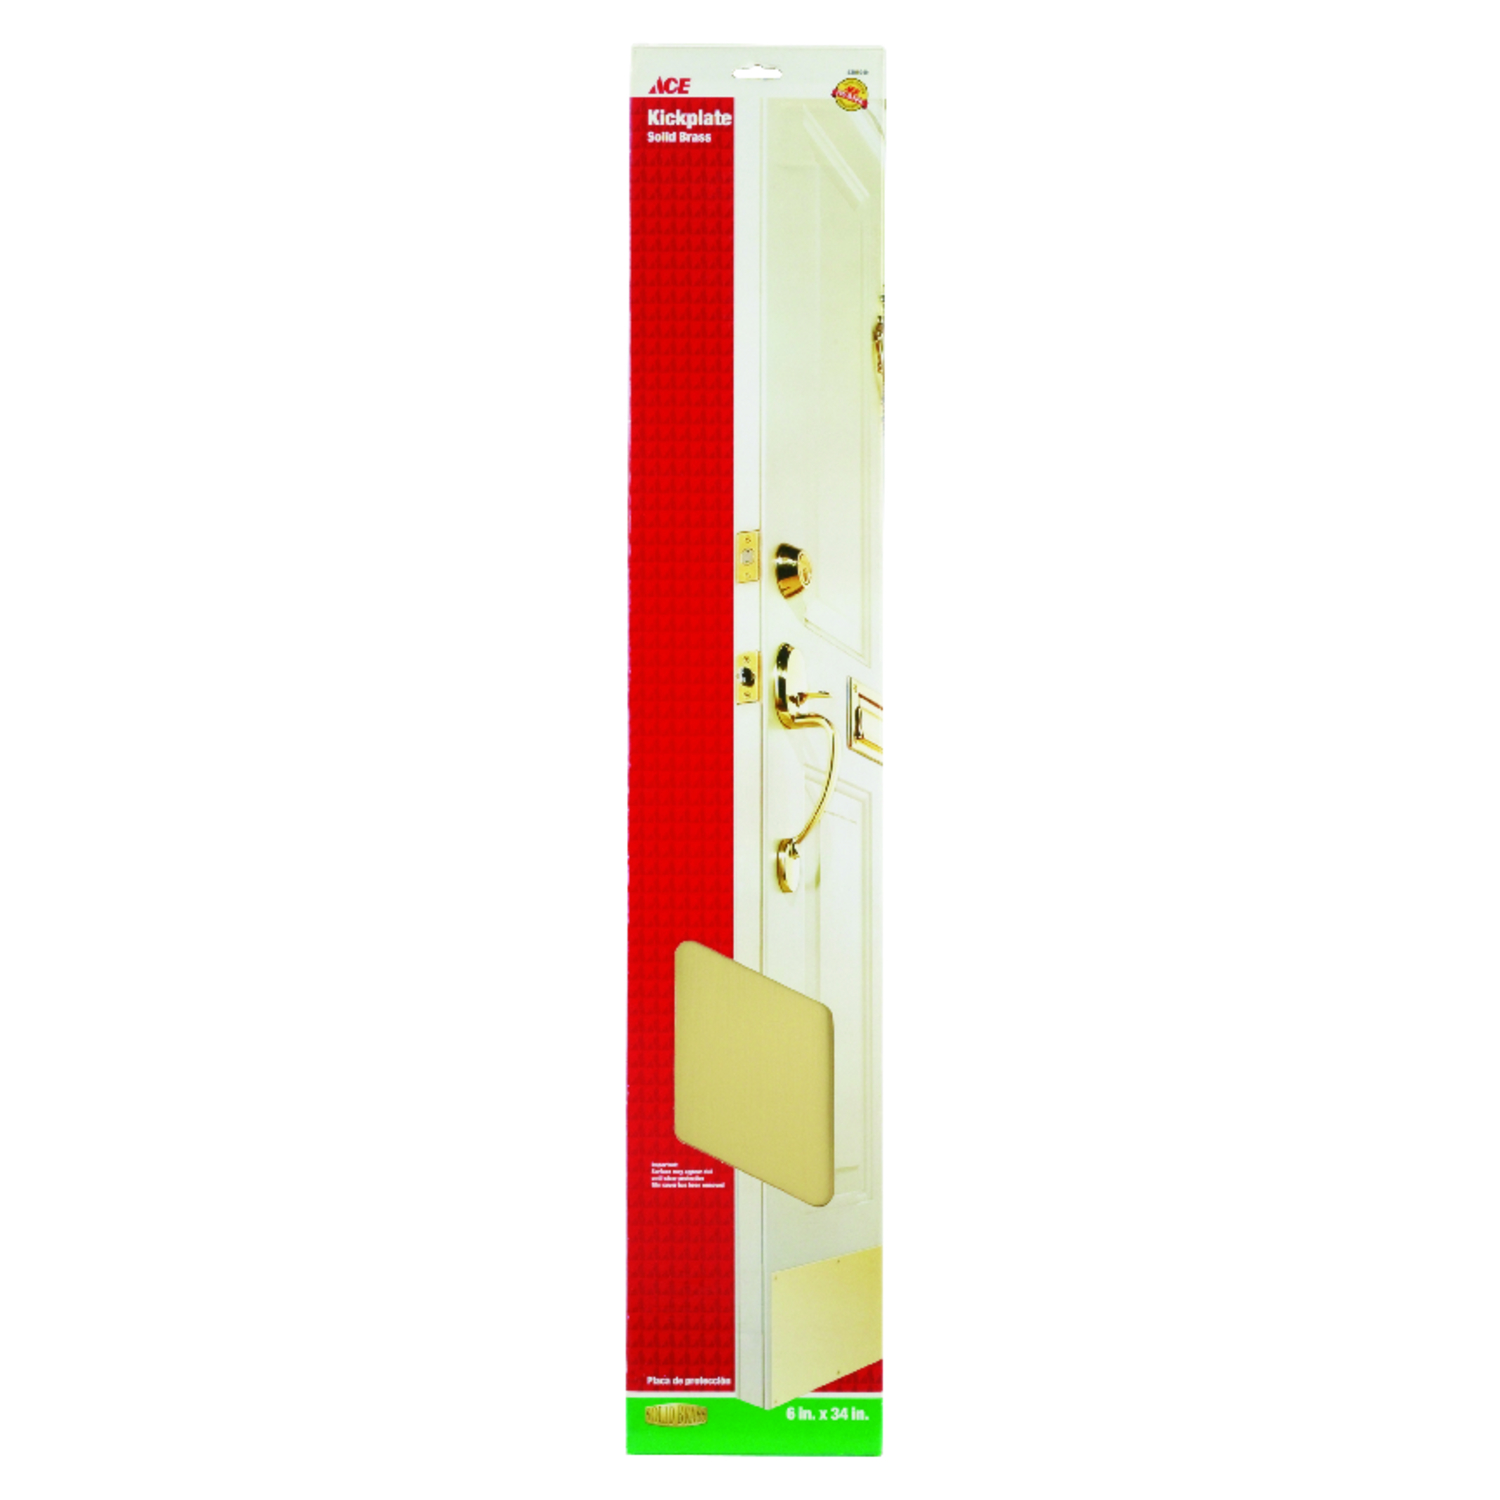 Ace  34 in. L x 6 in. H Bright Brass  Kickplate  Brass